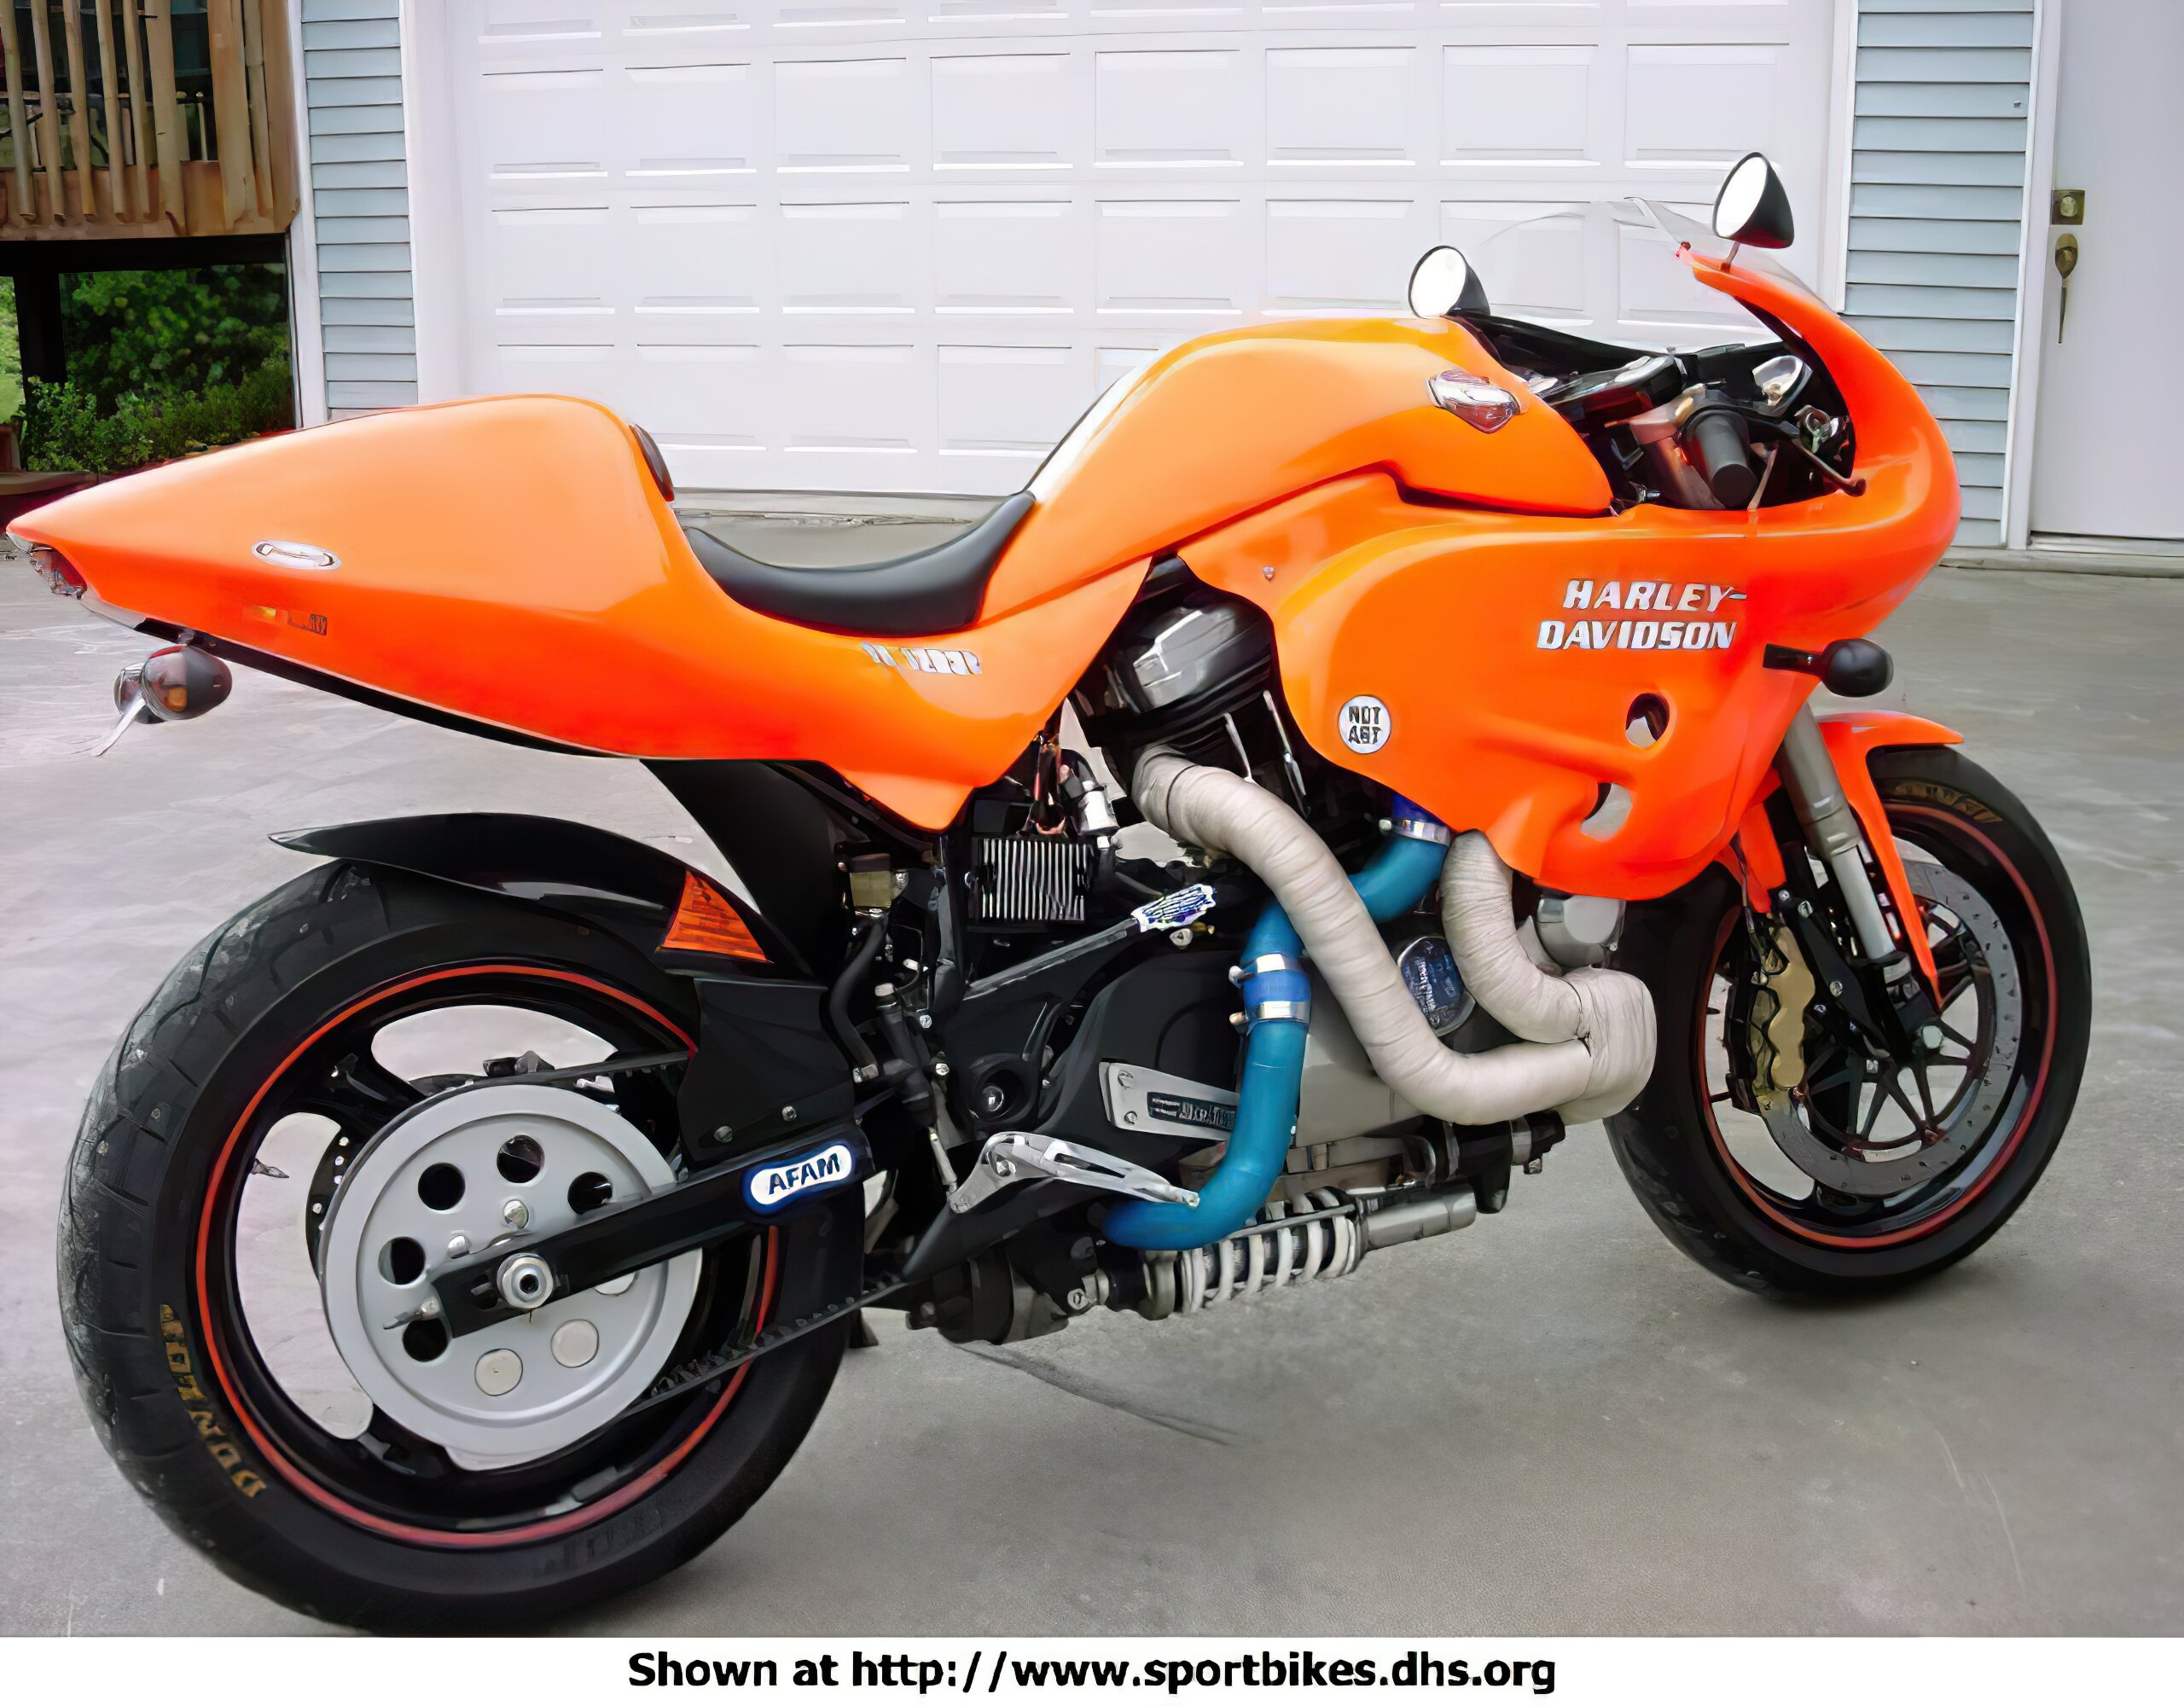 Buell S1/S2/S3 - ID: 34347